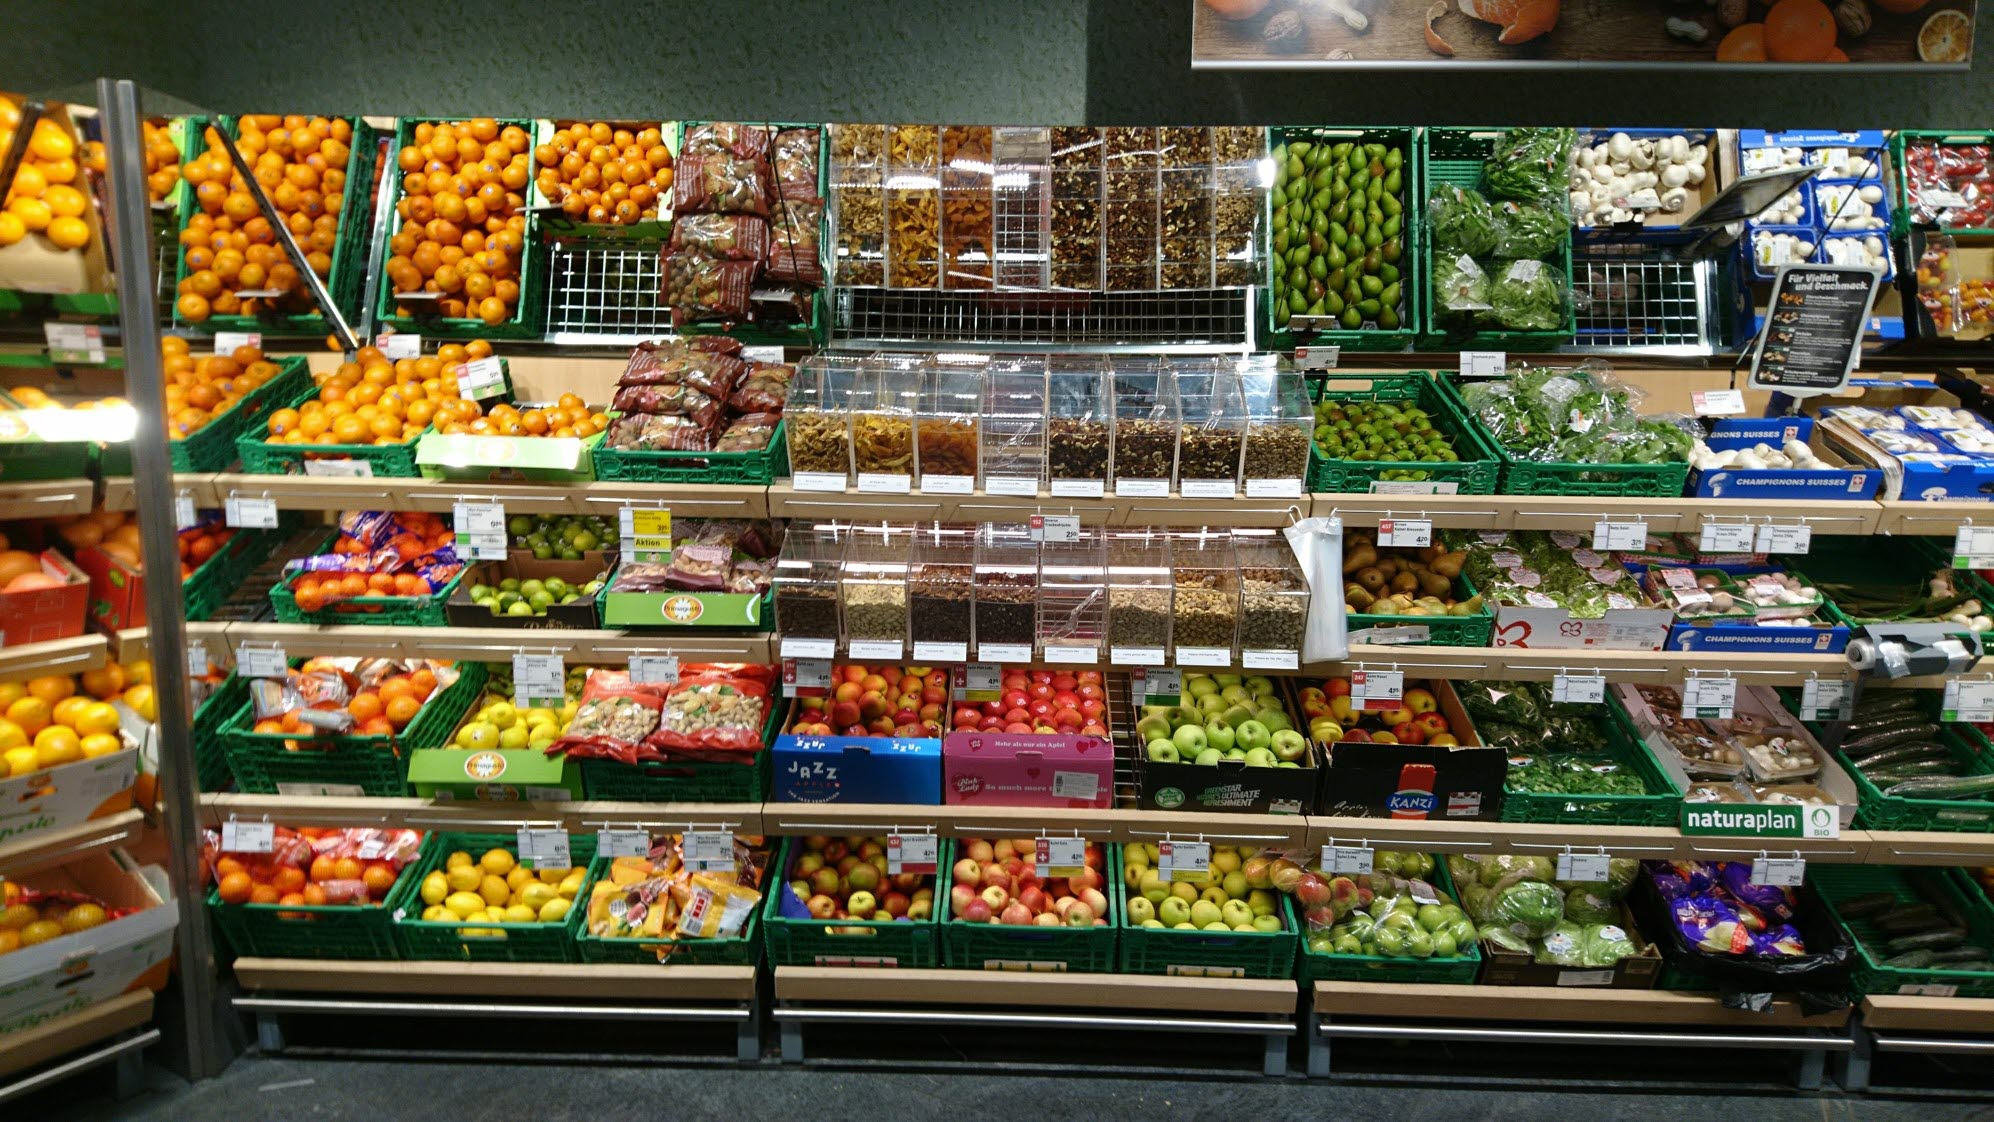 Coop_Switzerland_Bulk-Bins_HL-Display_Fresh_2.jpg